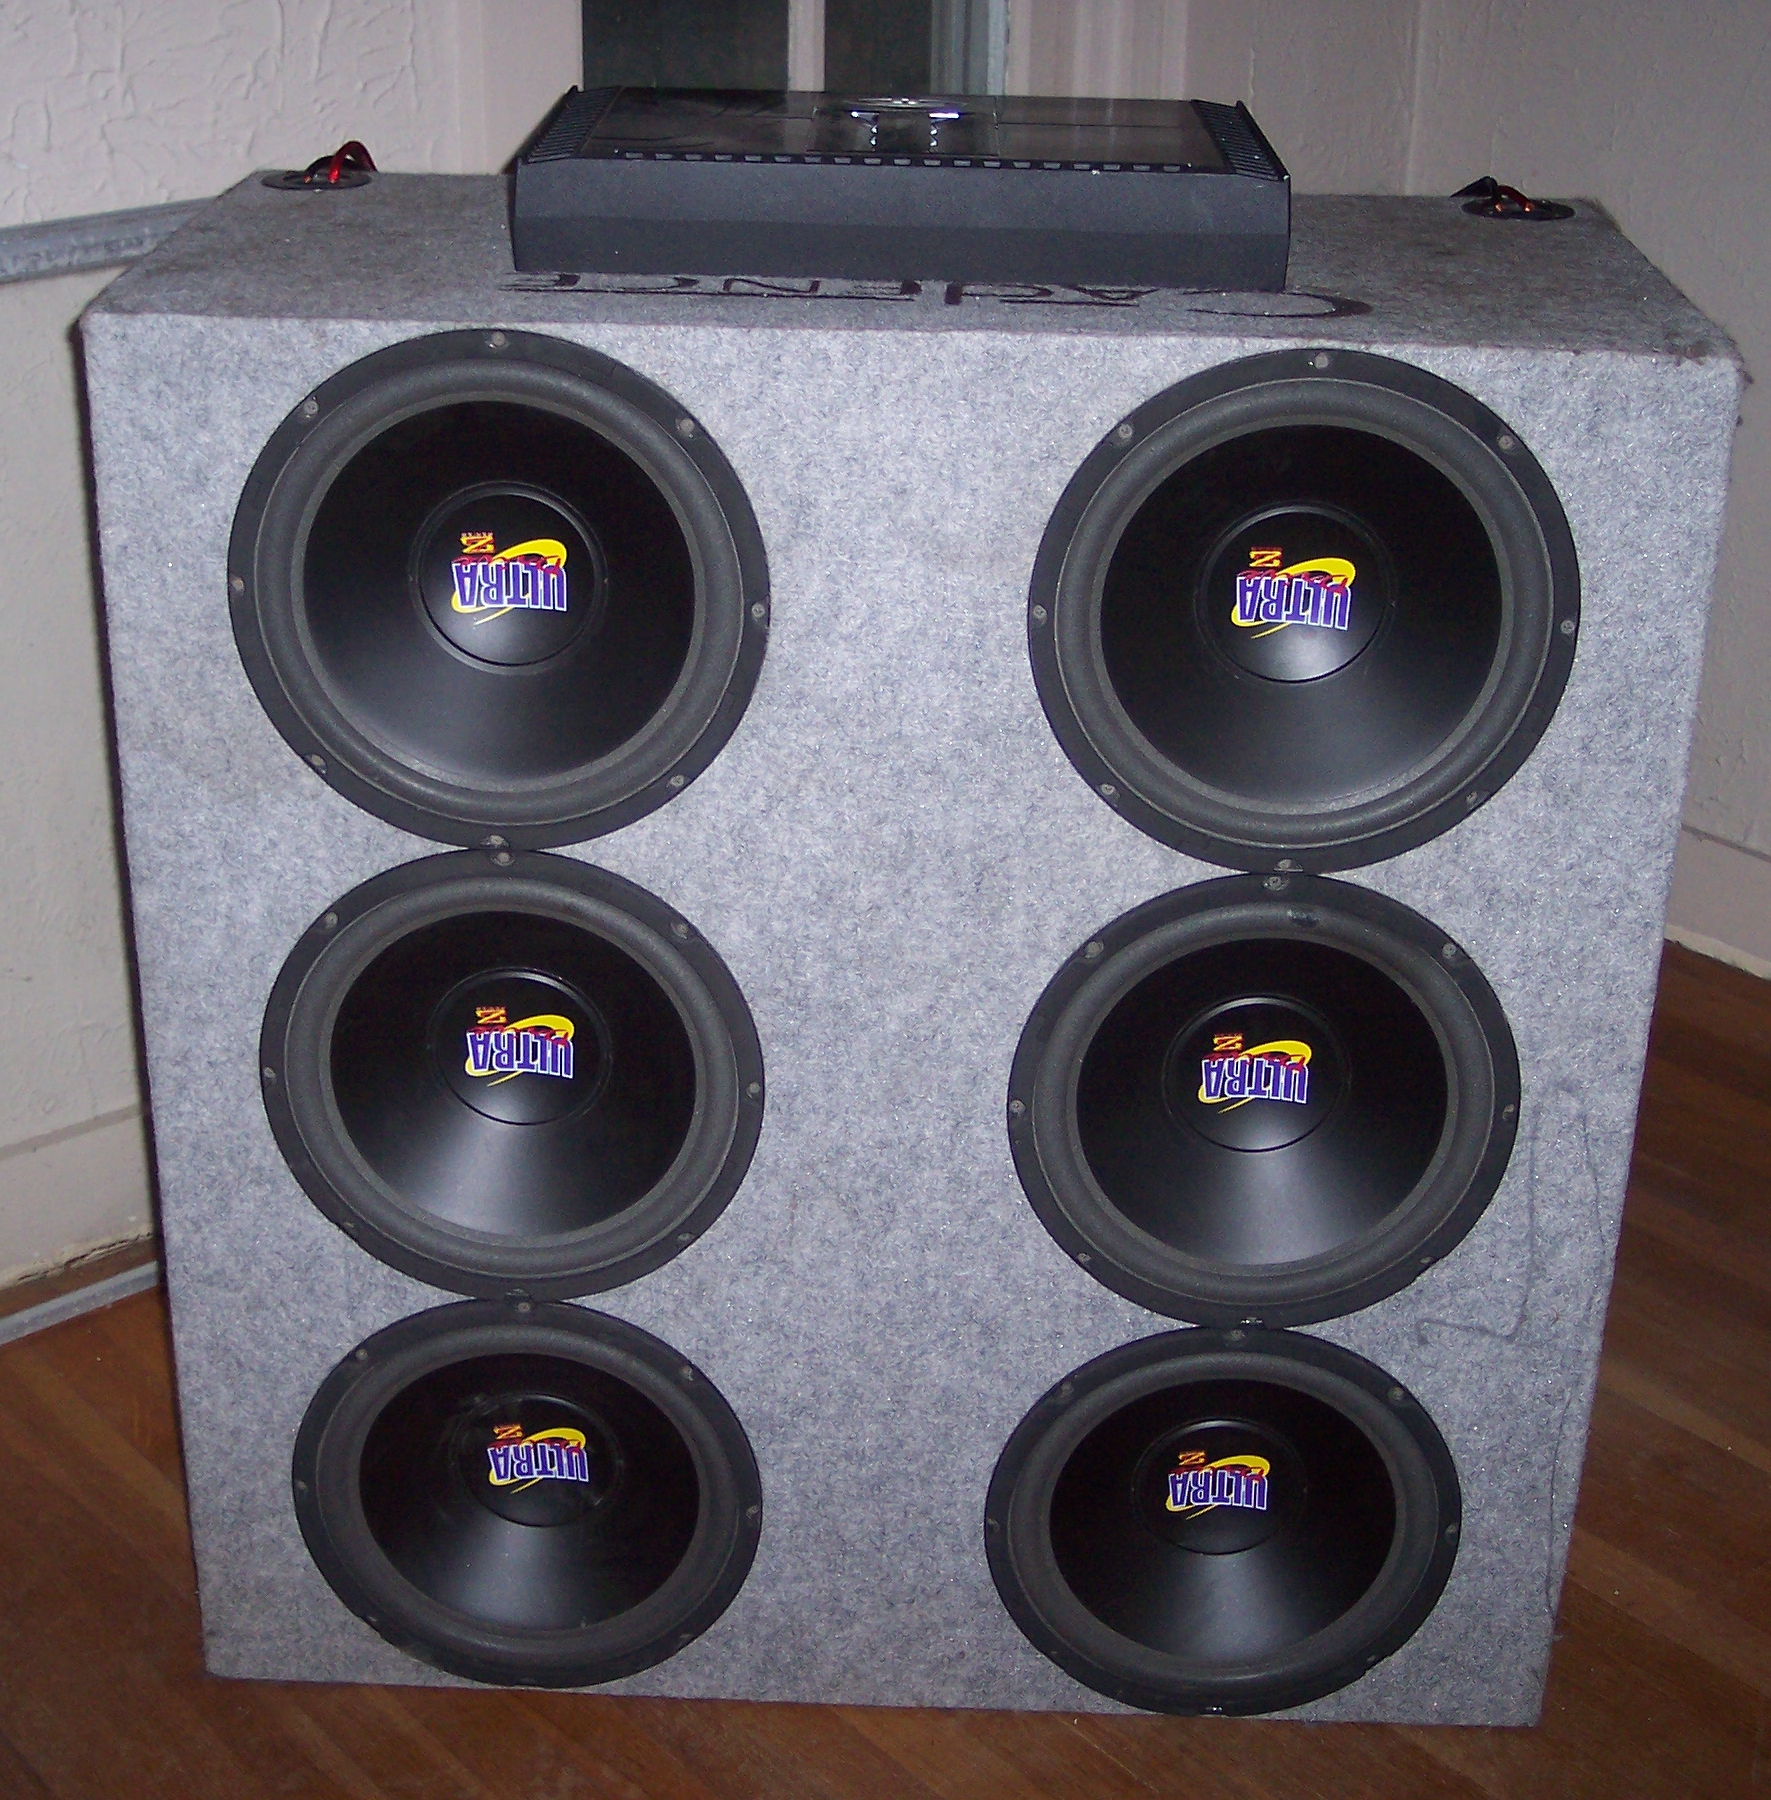 Cadence, Subwoofers